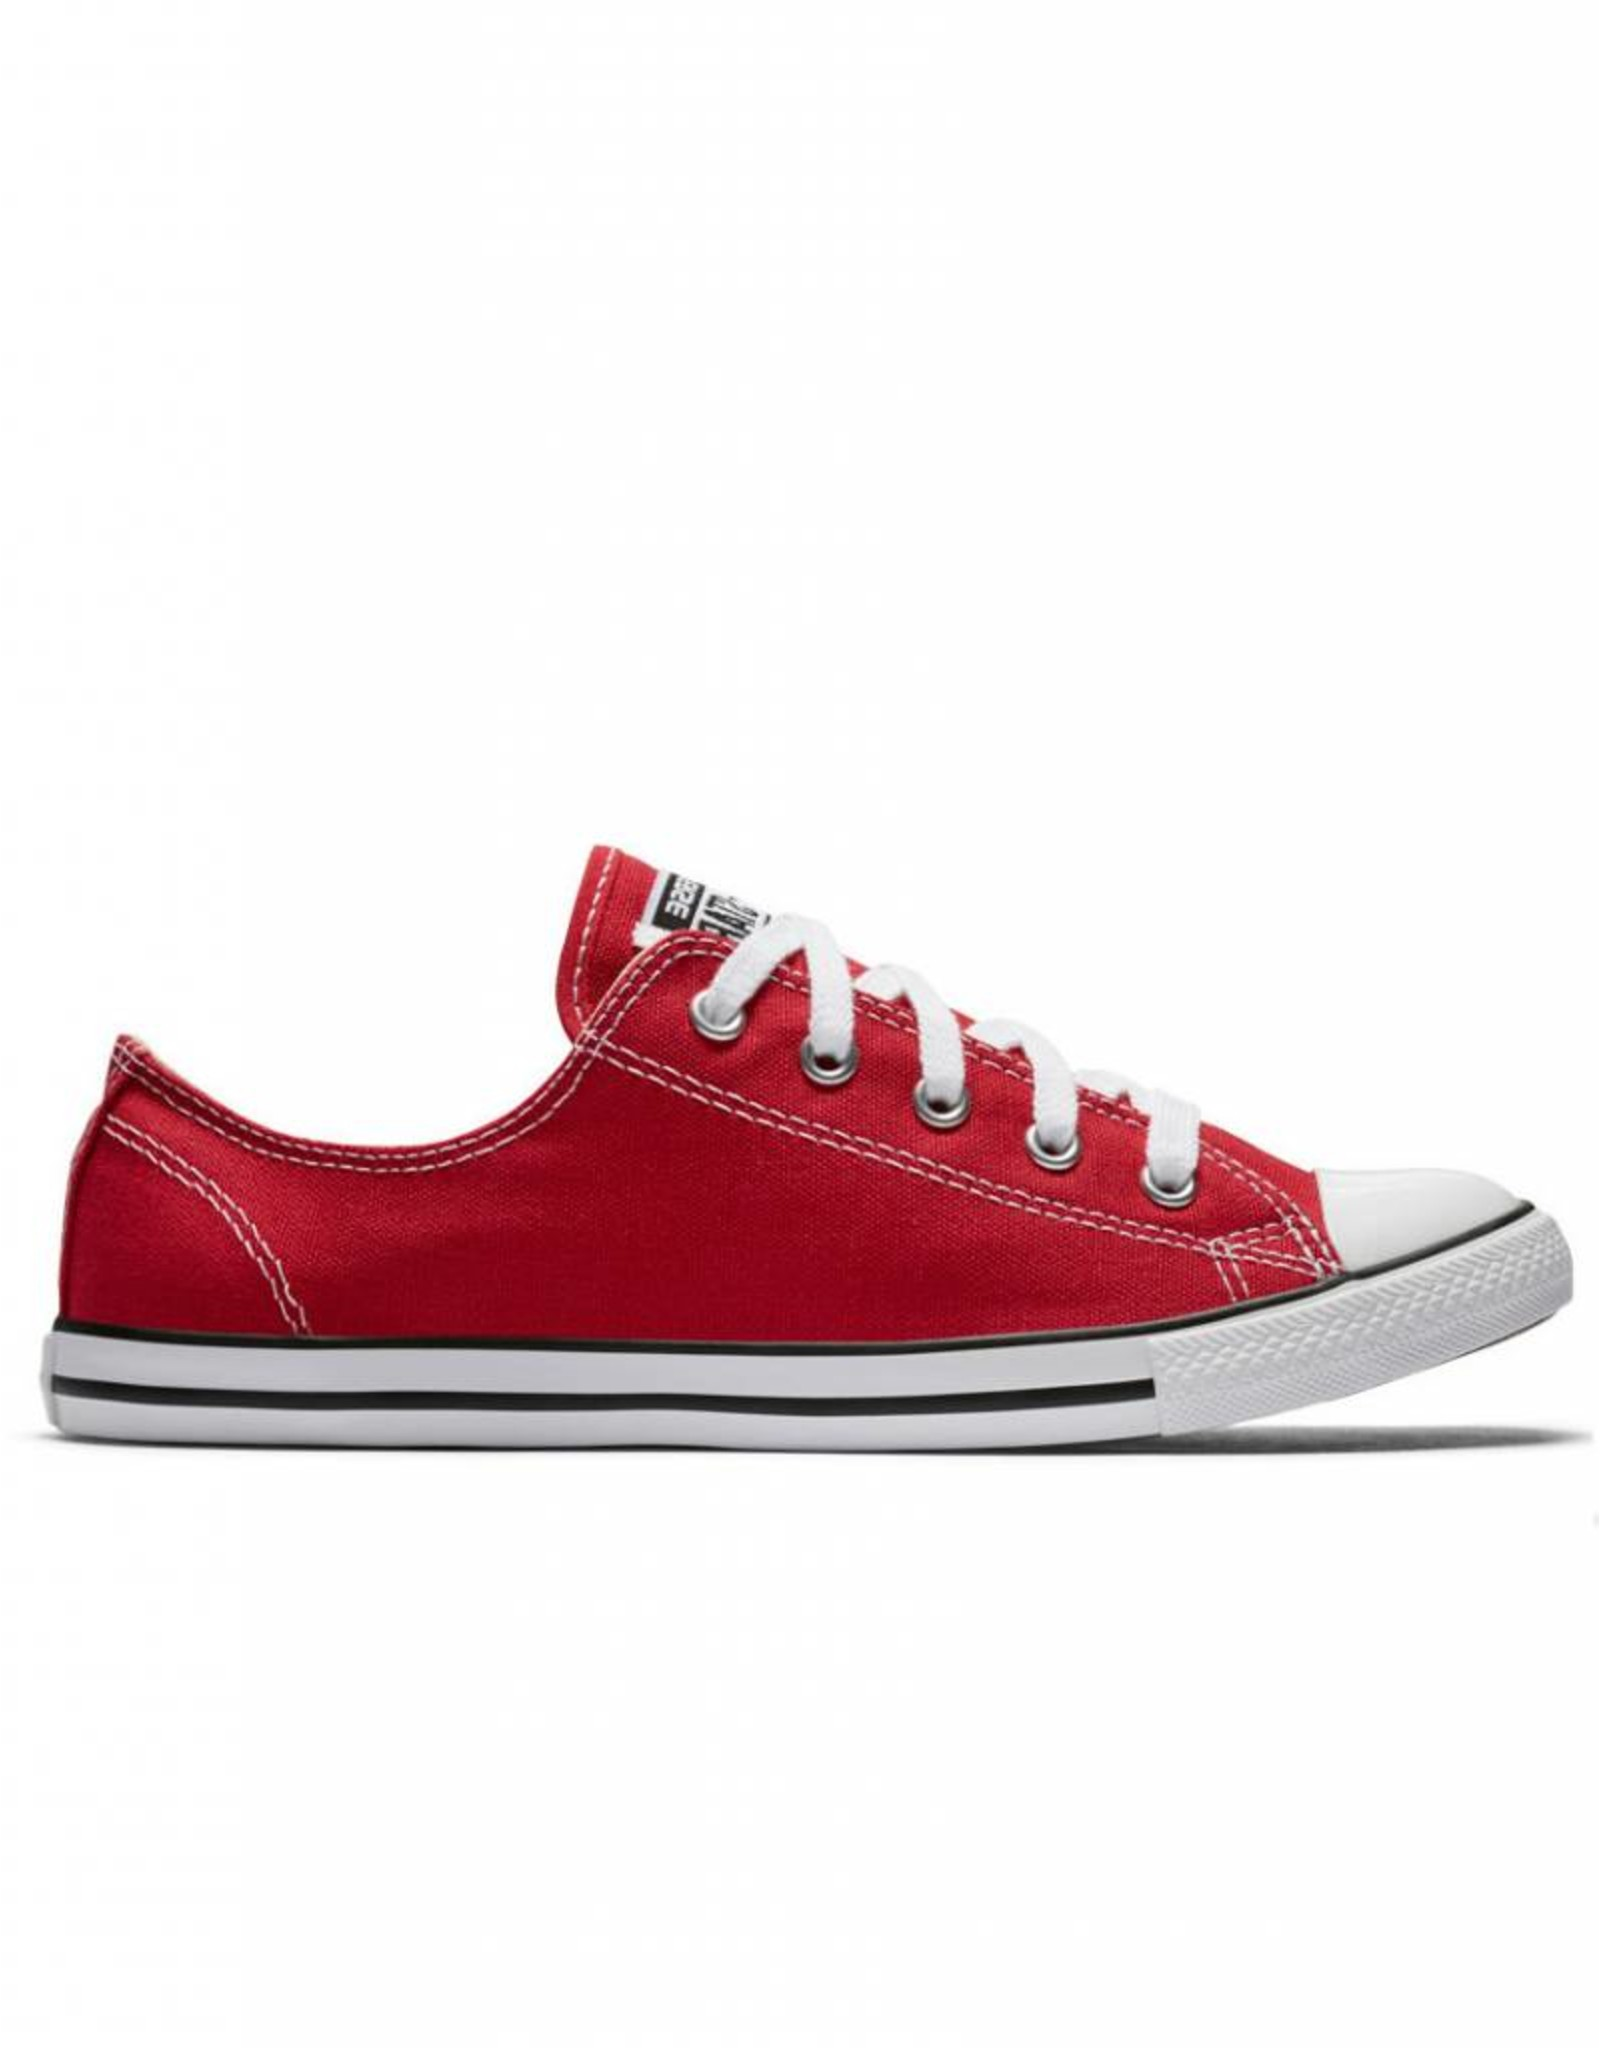 CONVERSE CHUCK TAYLOR DAINTY OX RED C40DCR-530056C